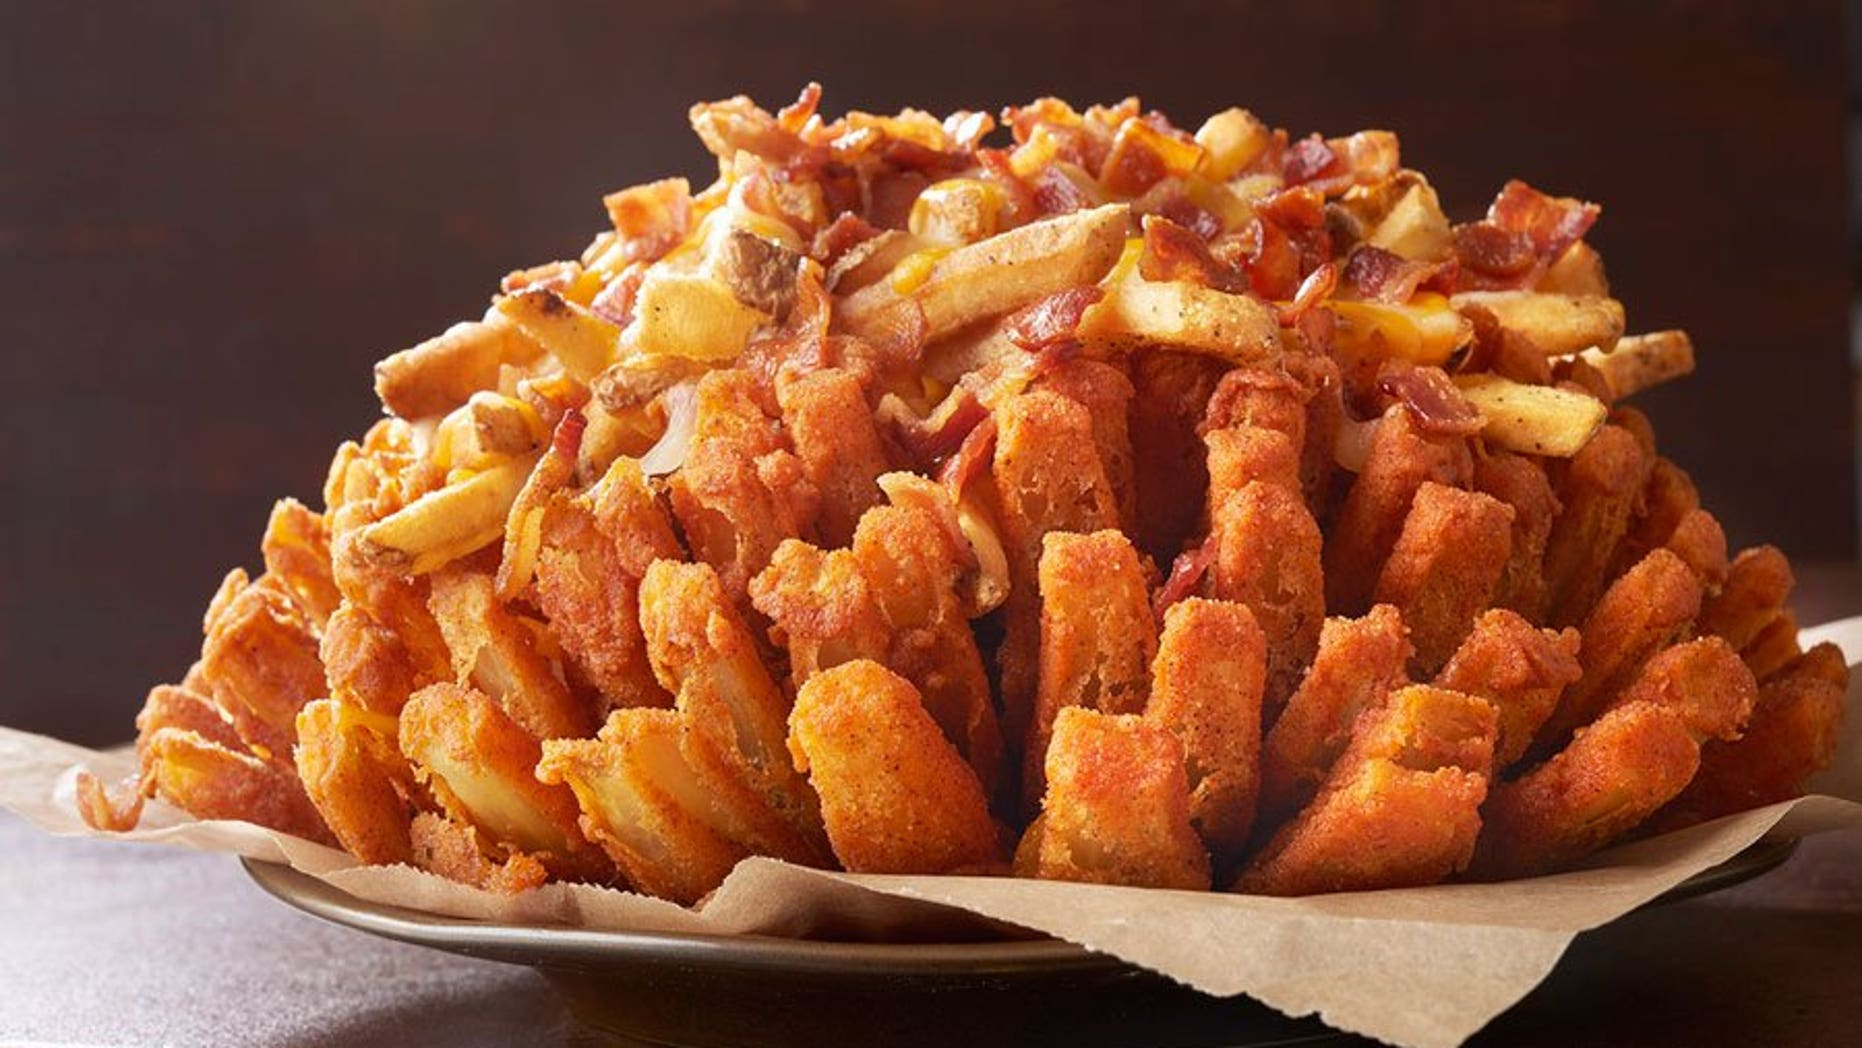 We Re No Stranger To Rounding Up Insanely Unhealthy Menu Items At Chain Restaurants And Outback Steakhouse S Legendary Bloomin Onion An Entire Colossal